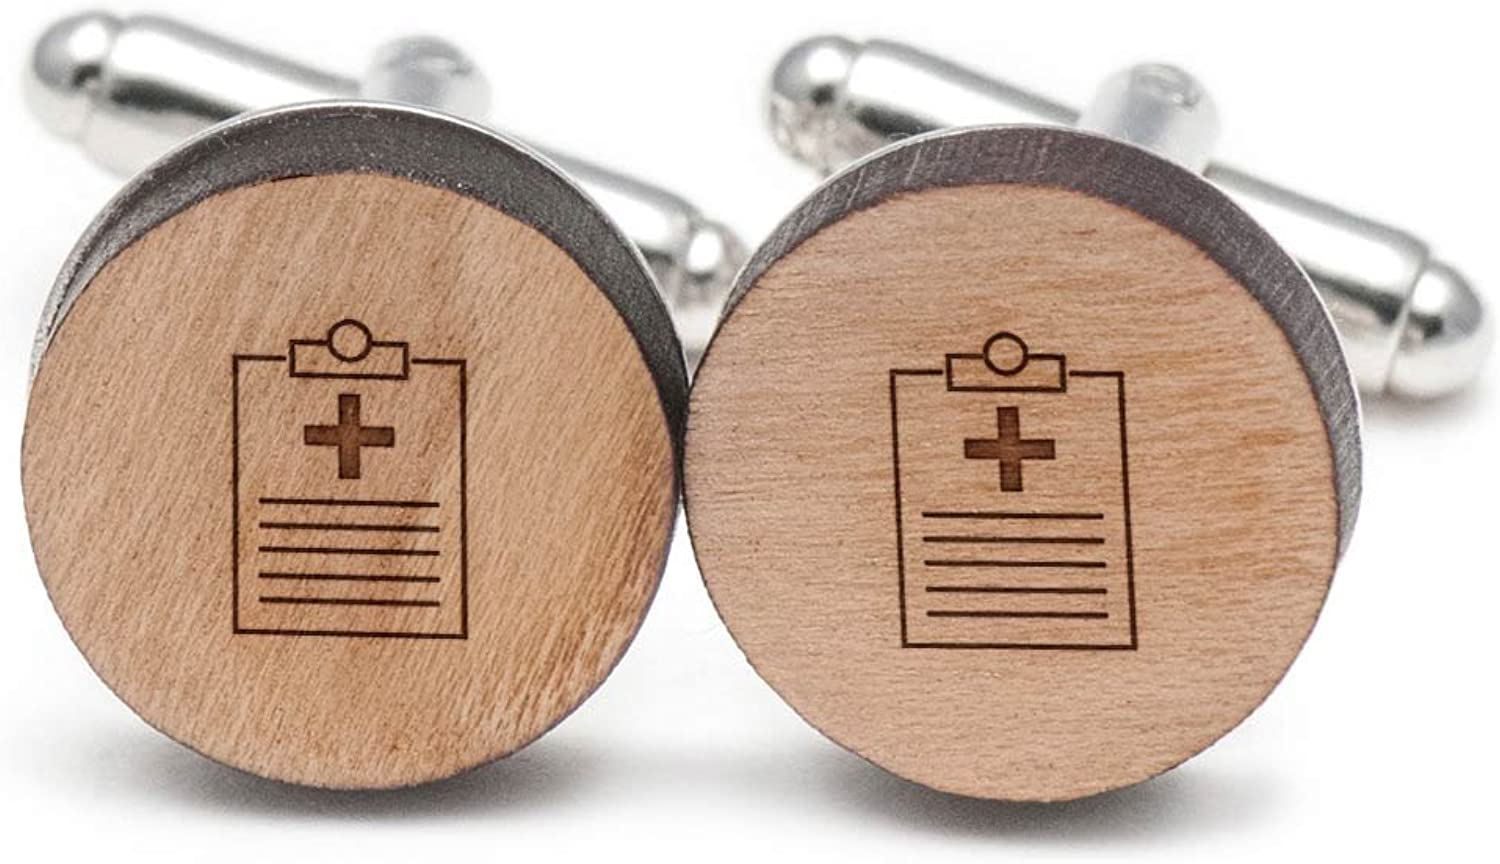 Health Clipboard Cufflinks, Wood Cufflinks Hand Made in the USA